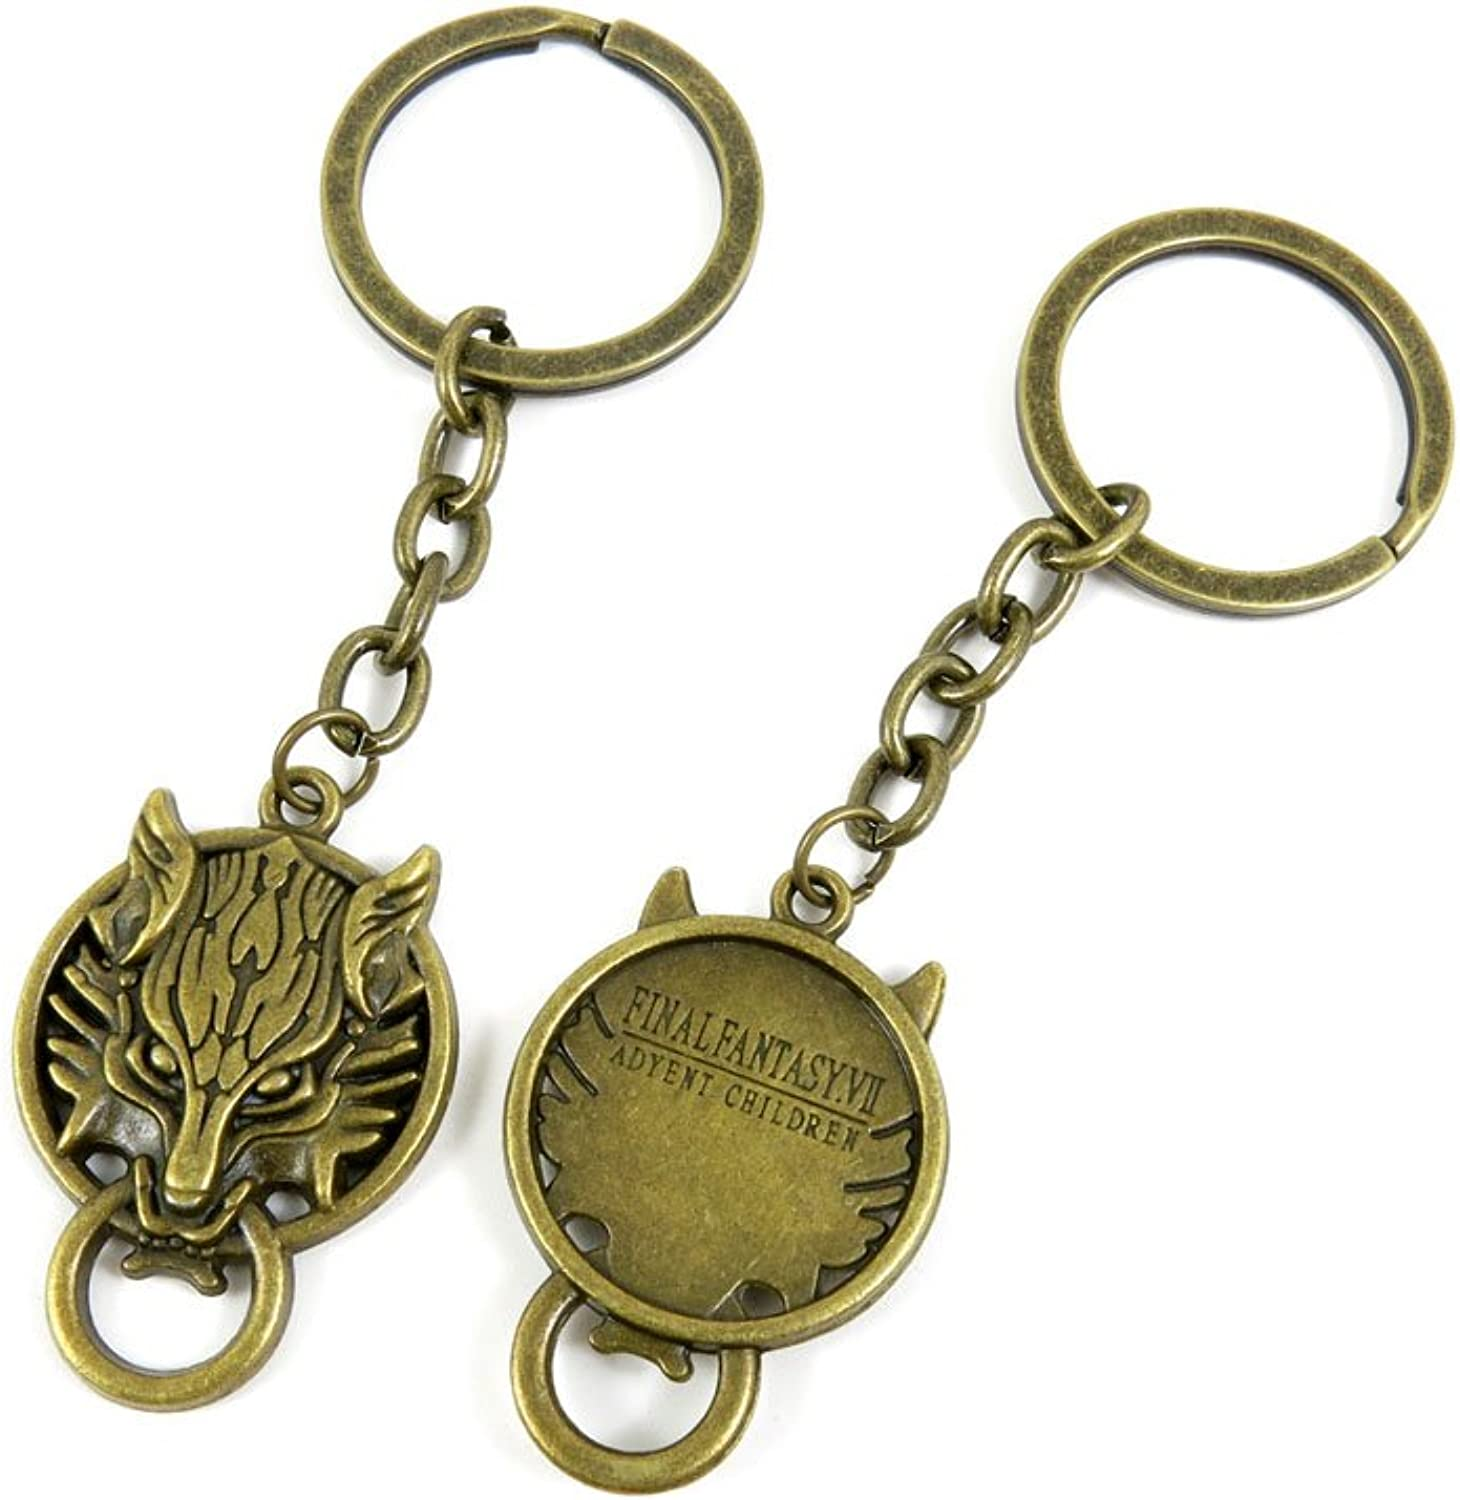 100 PCS Keyrings Keychains Key Ring Chains Tags Jewelry Findings Clasps Buckles Supplies T5QB7 Dragon Door Handle